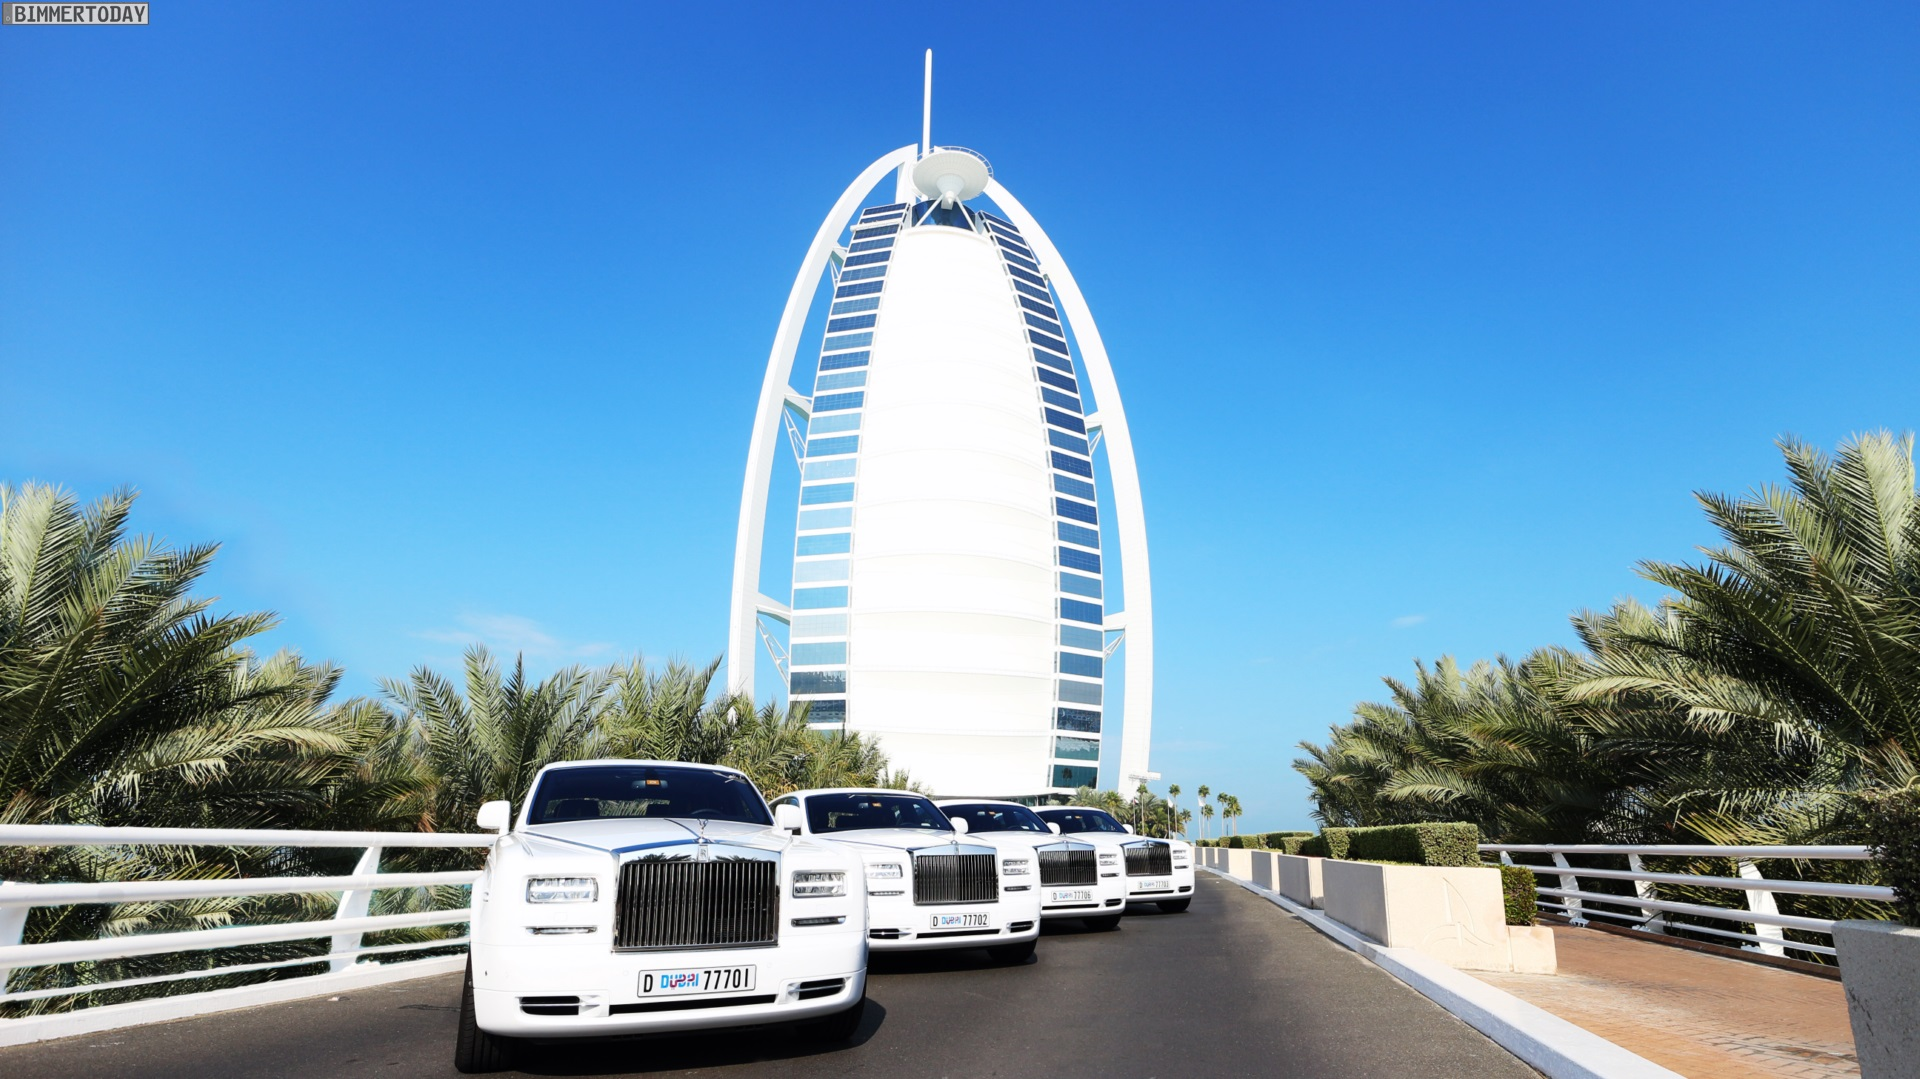 Dubai S Burj Al Arab Hotel Has Added Four More Rolls